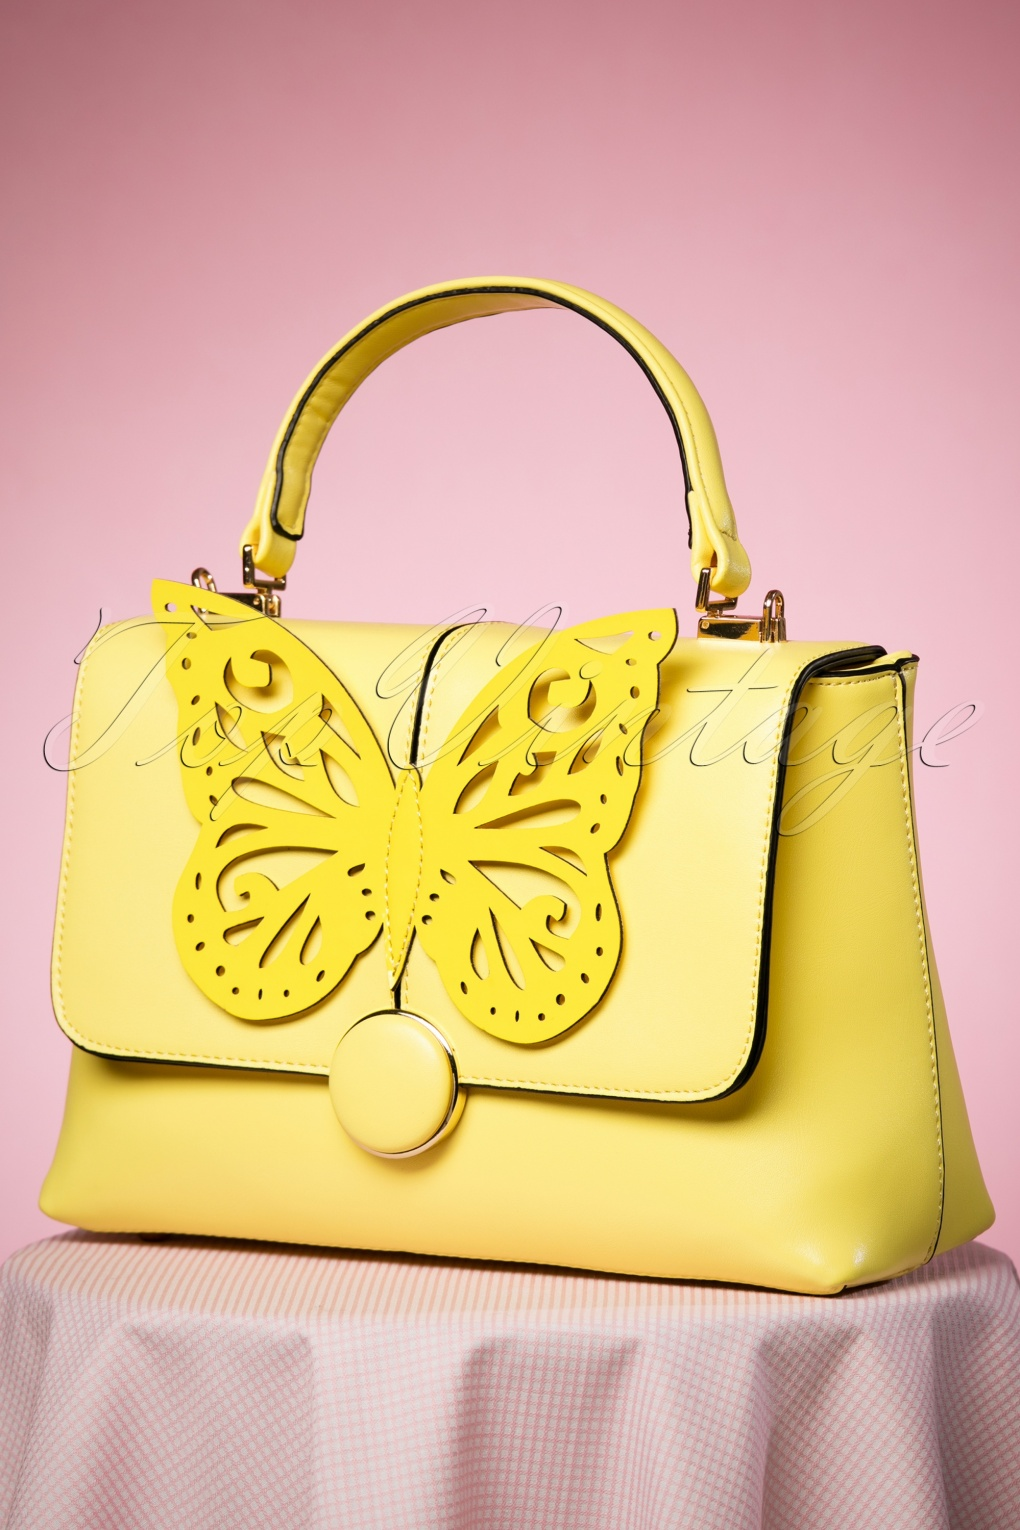 Vintage & Retro Handbags, Purses, Wallets, Bags 60s Beautiful Butterfly Handbag in Yellow �44.11 AT vintagedancer.com